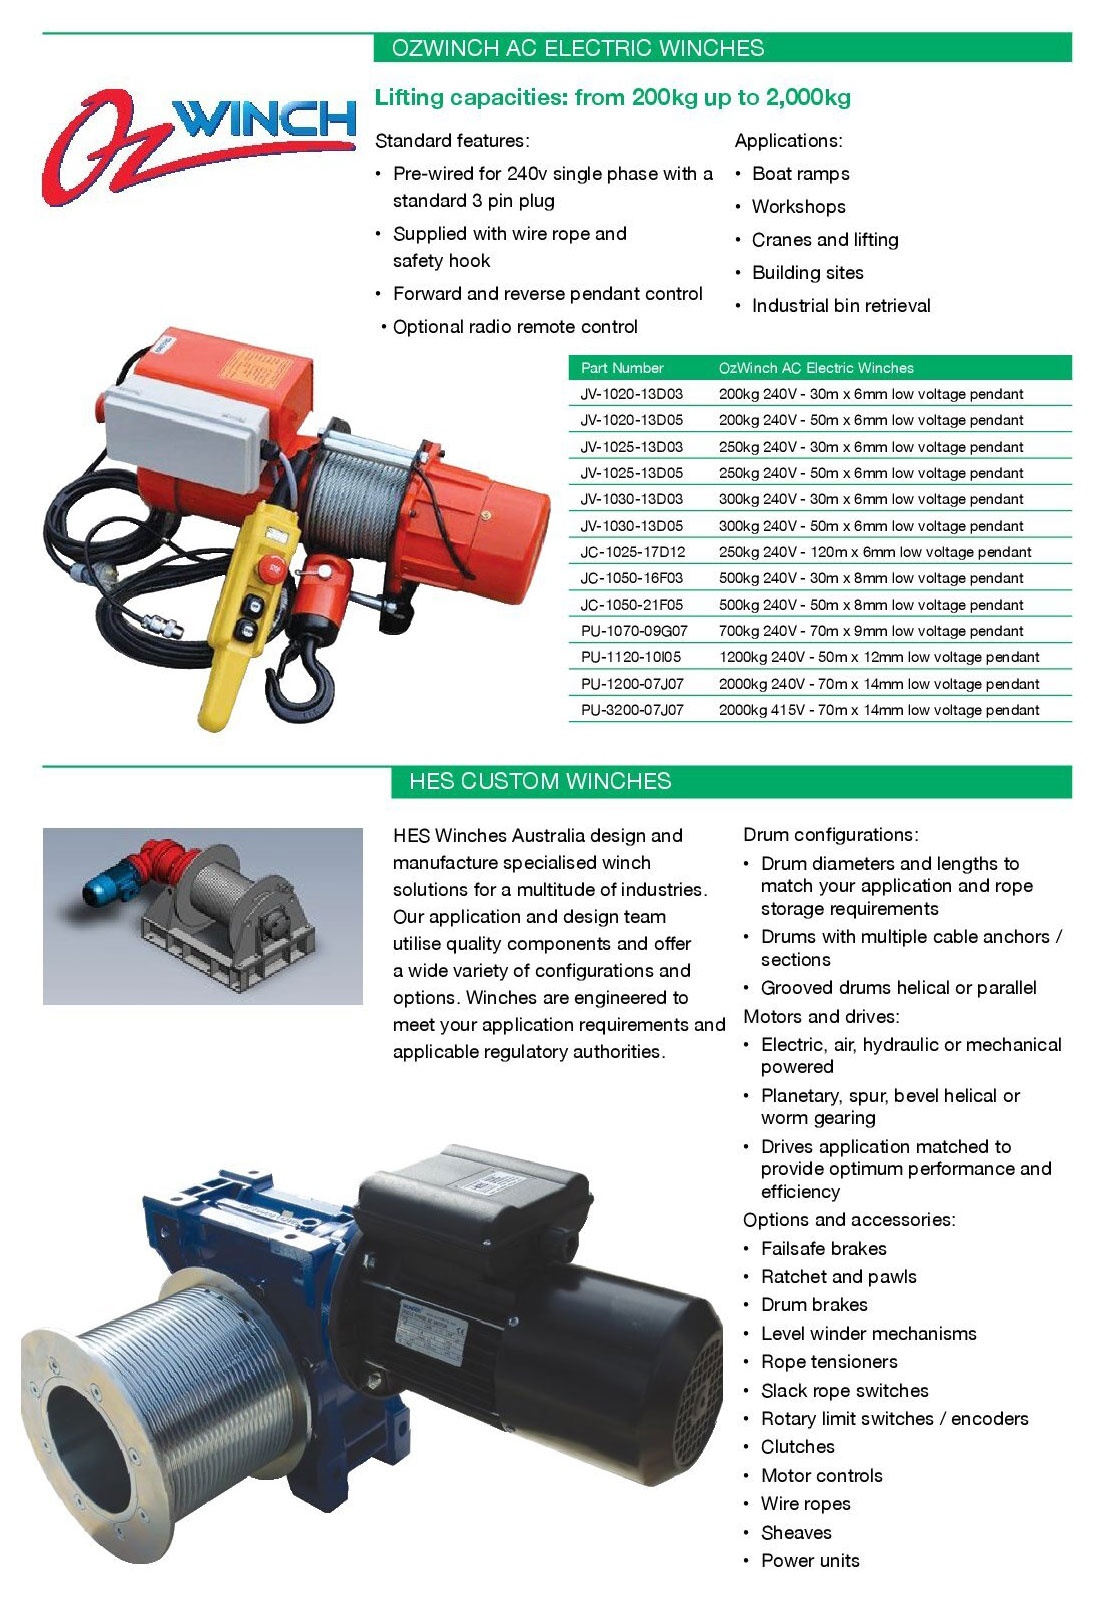 Ozwinch-ac-elecTric-HES-CUSTOM-WINCHES_detail